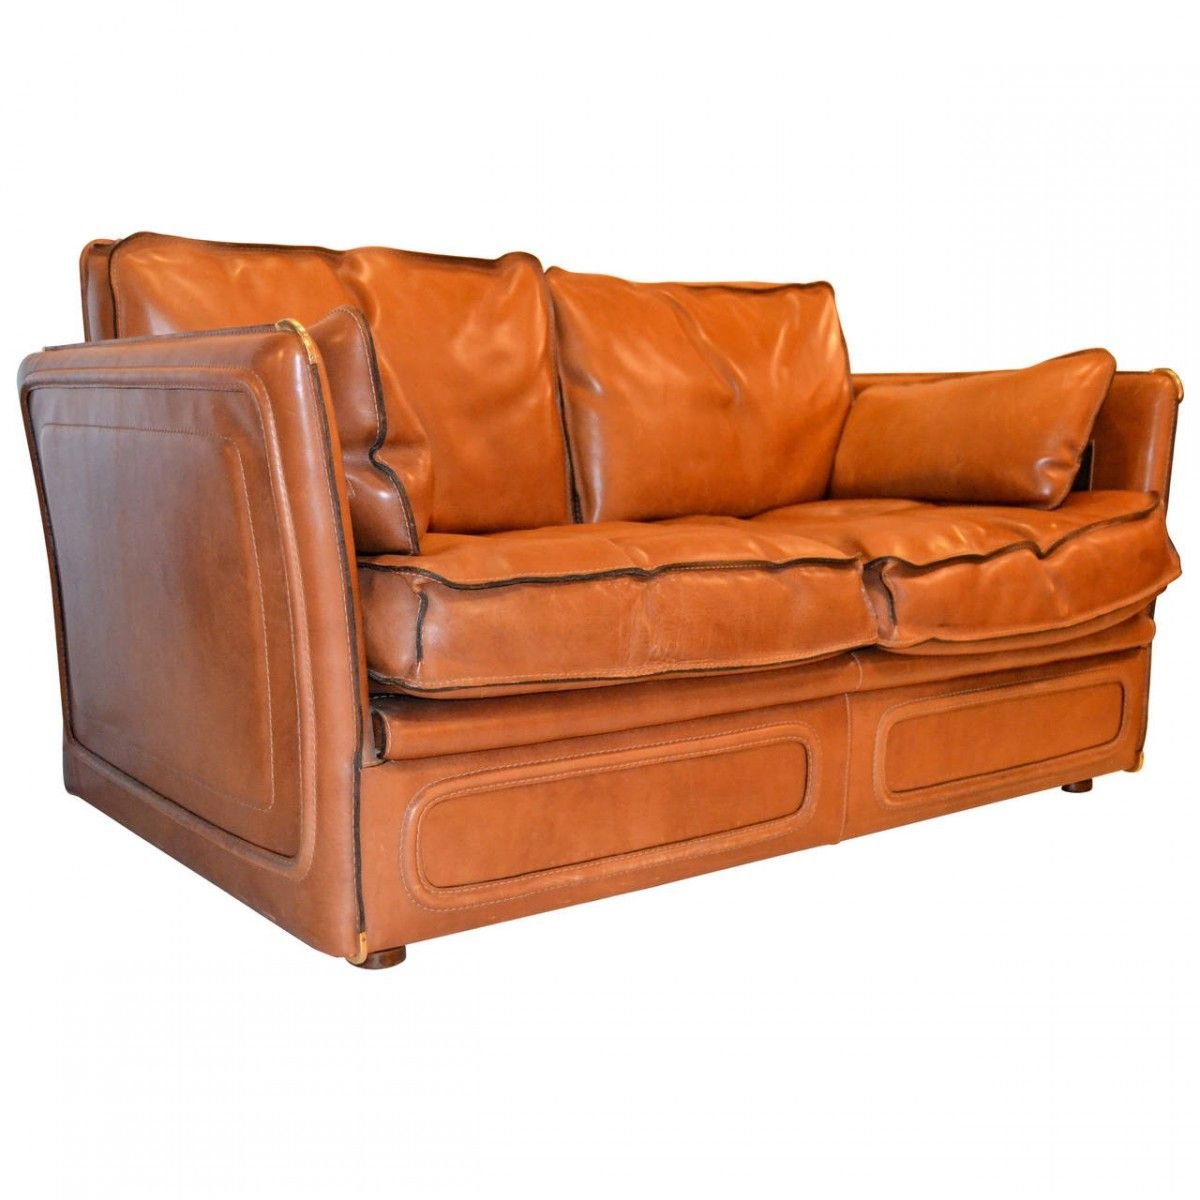 sofa anilinleder free dreipunkt sofa vintage modular leather sofa from dreipunkt cor hd